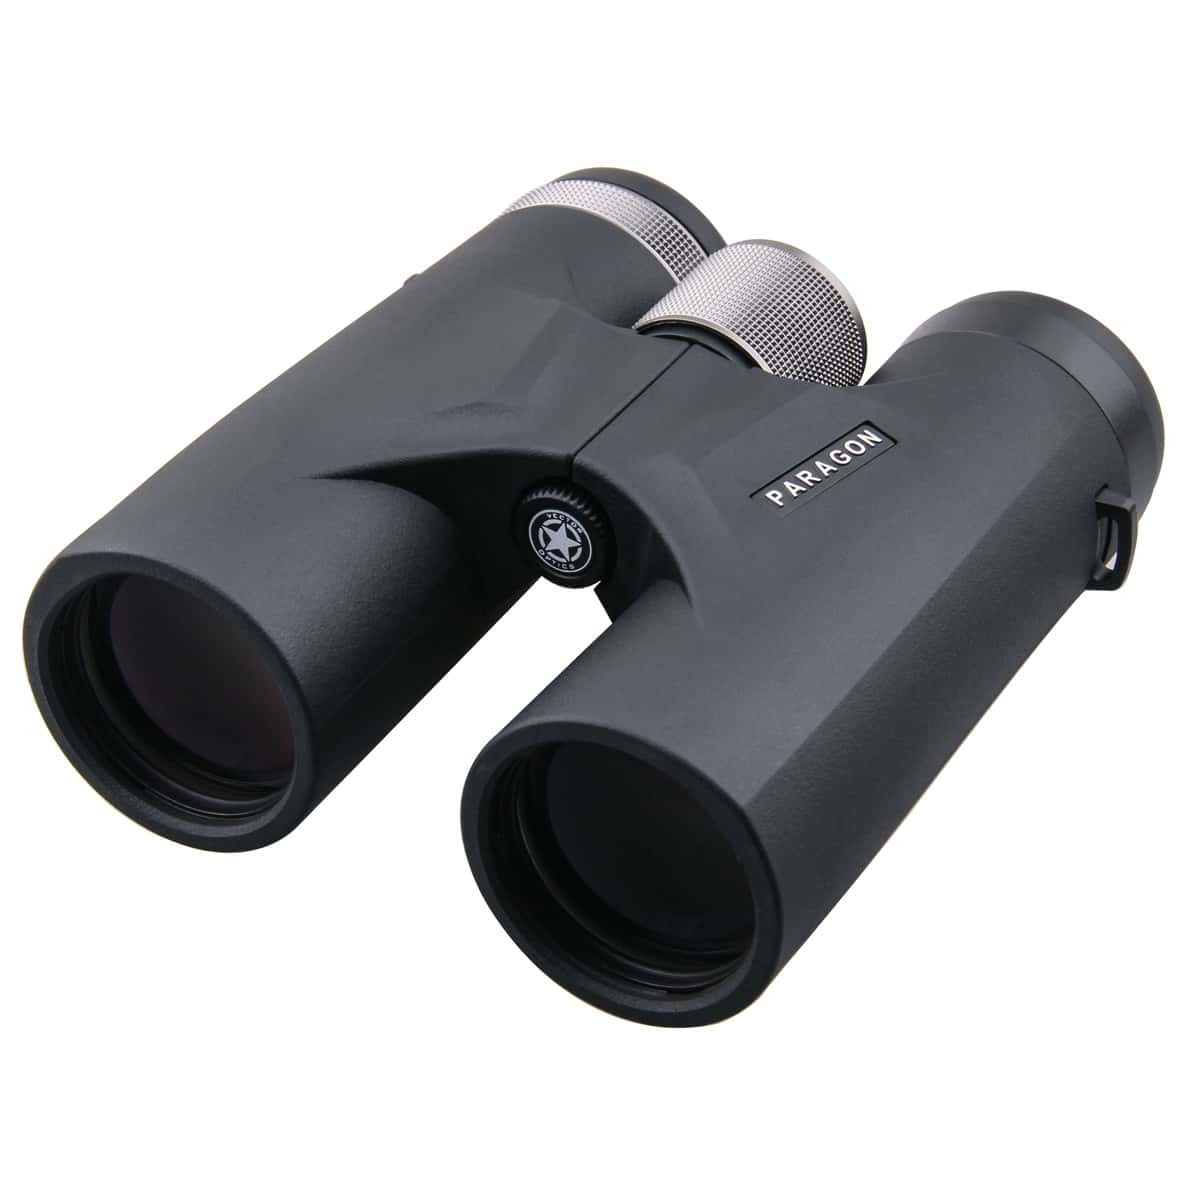 Vector Optics Paragon Water Proof 10x42 Roof Prism Bak4 Binoculars With FMC 7 Lens for Bird Watching Hunting Traveling